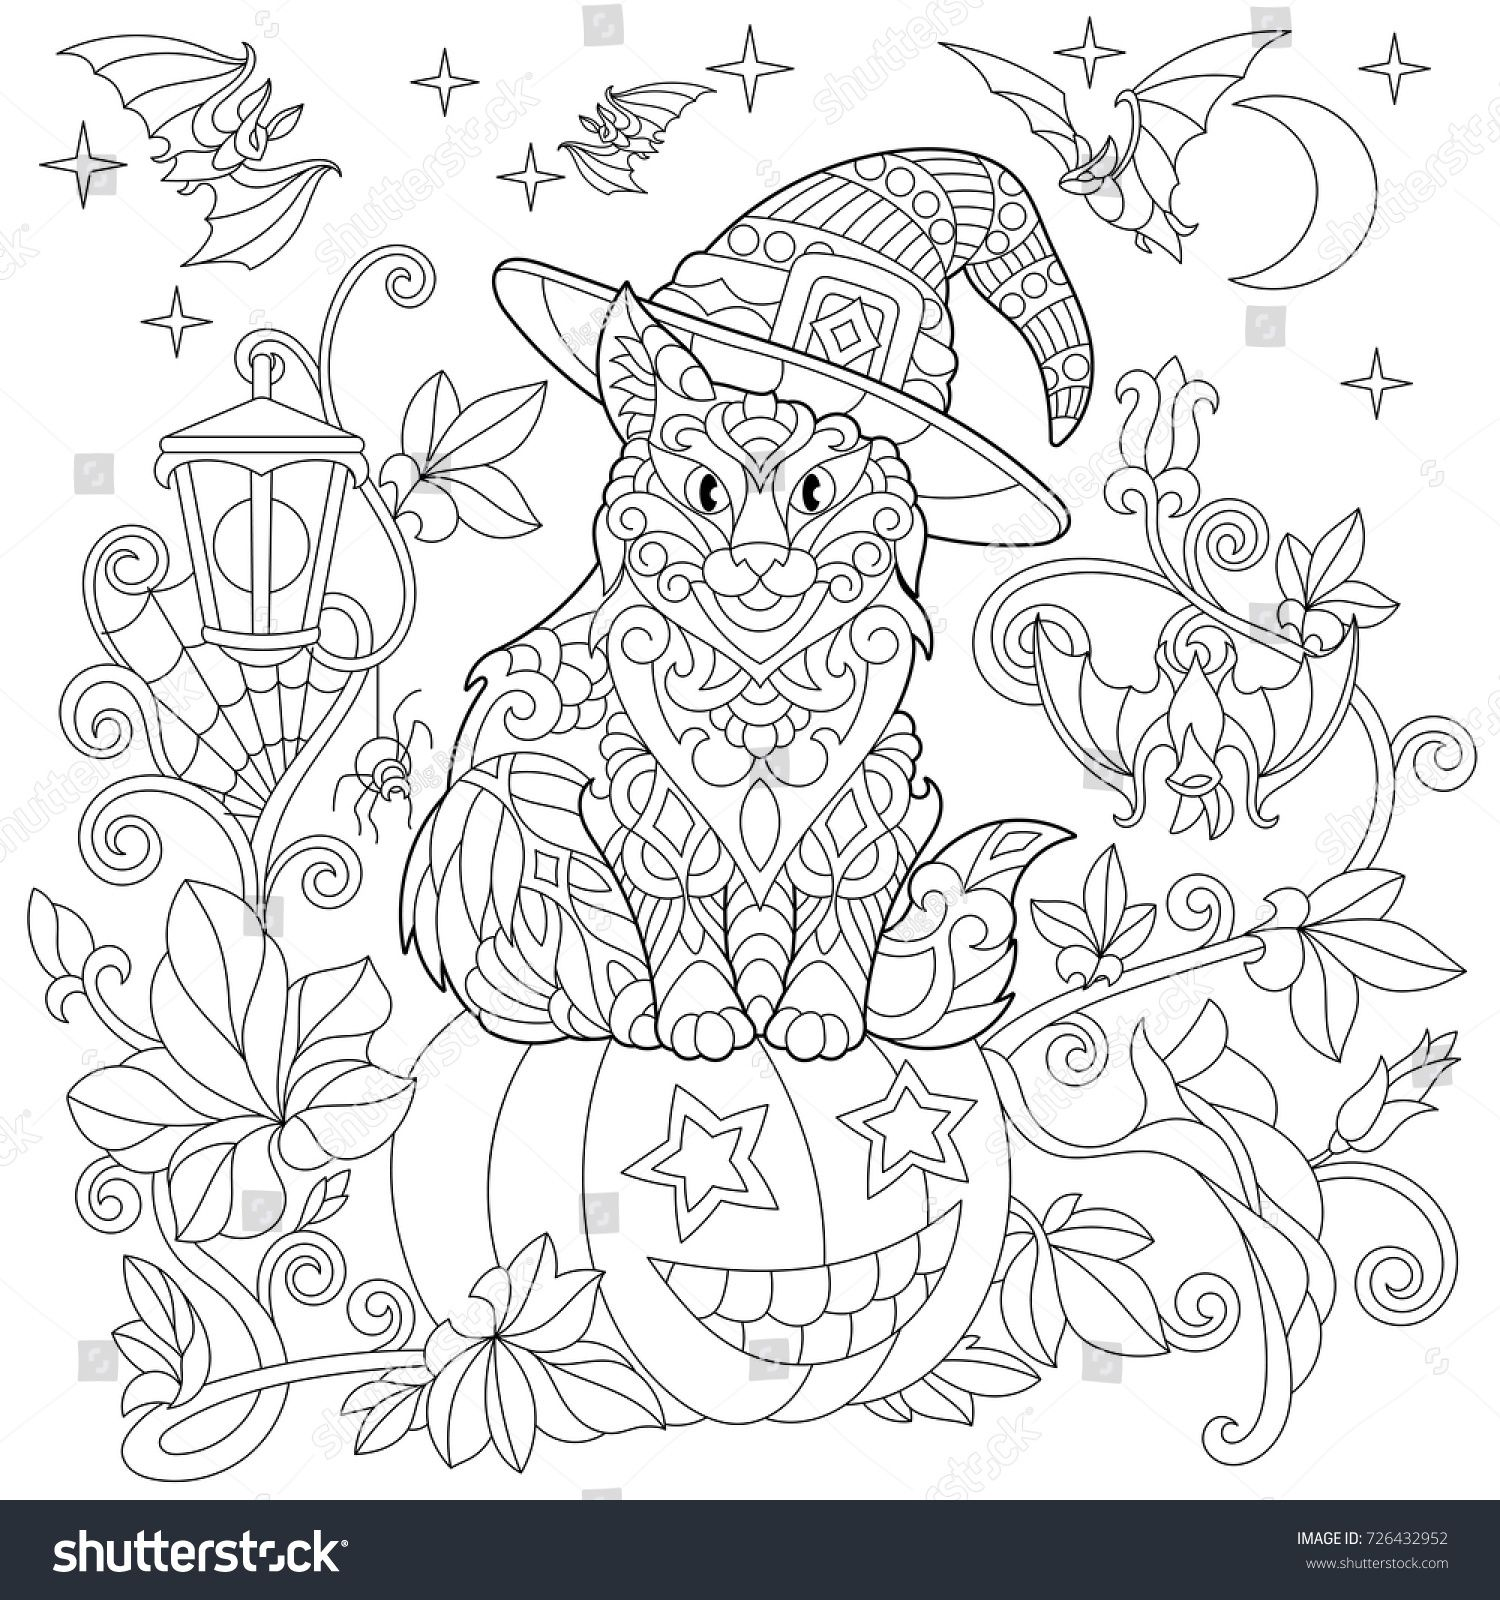 Halloween Coloring Page Cat In A Hat Halloween Pumpkin Flying